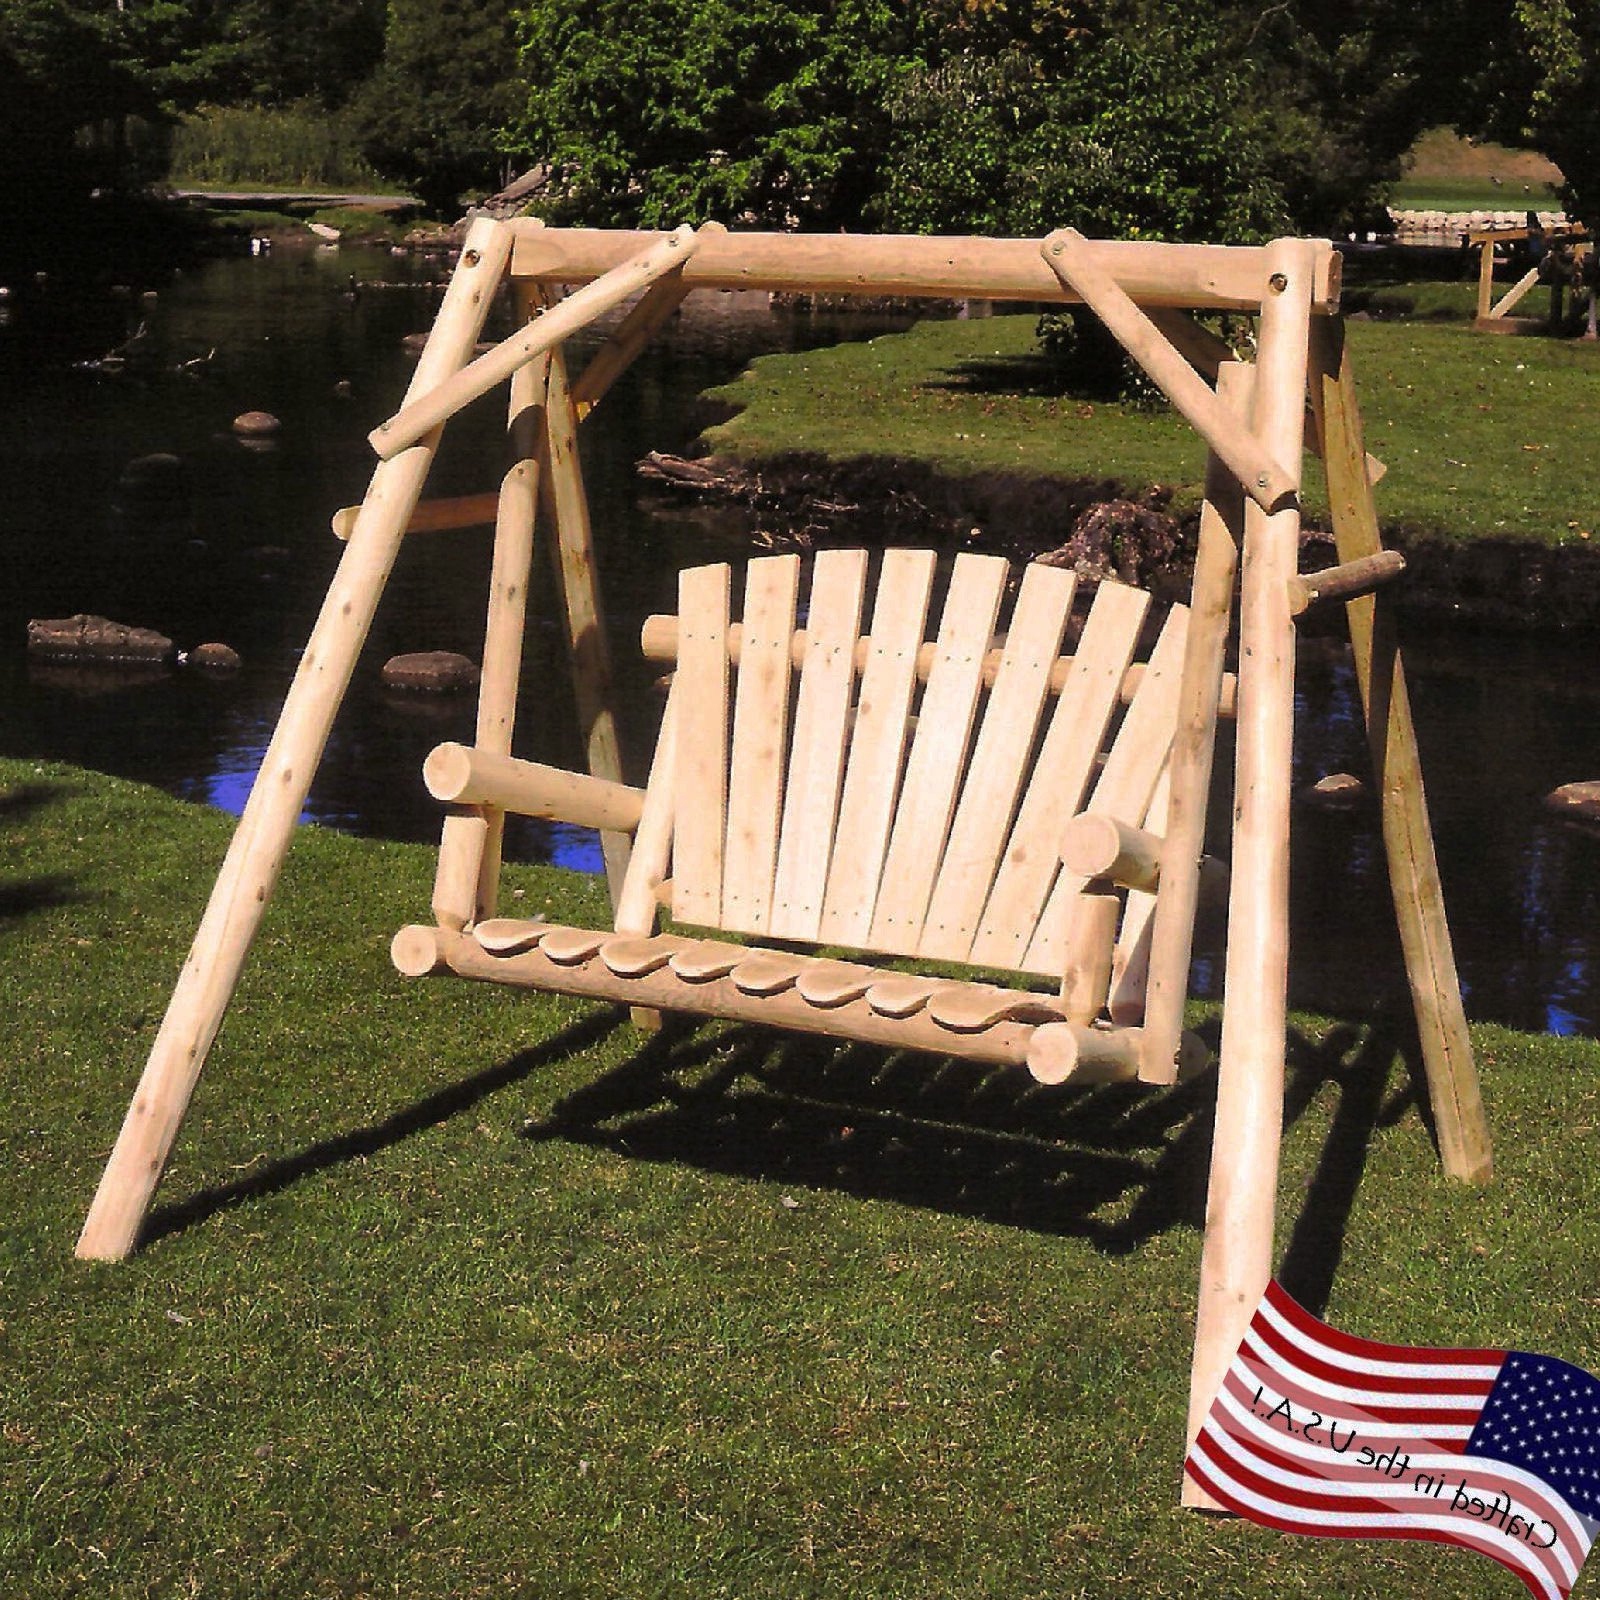 Lakeland Mills White Cedar Log Porch Swing And Stand Set – Walmart For 2019 Patio Porch Swings With Stand (View 6 of 25)